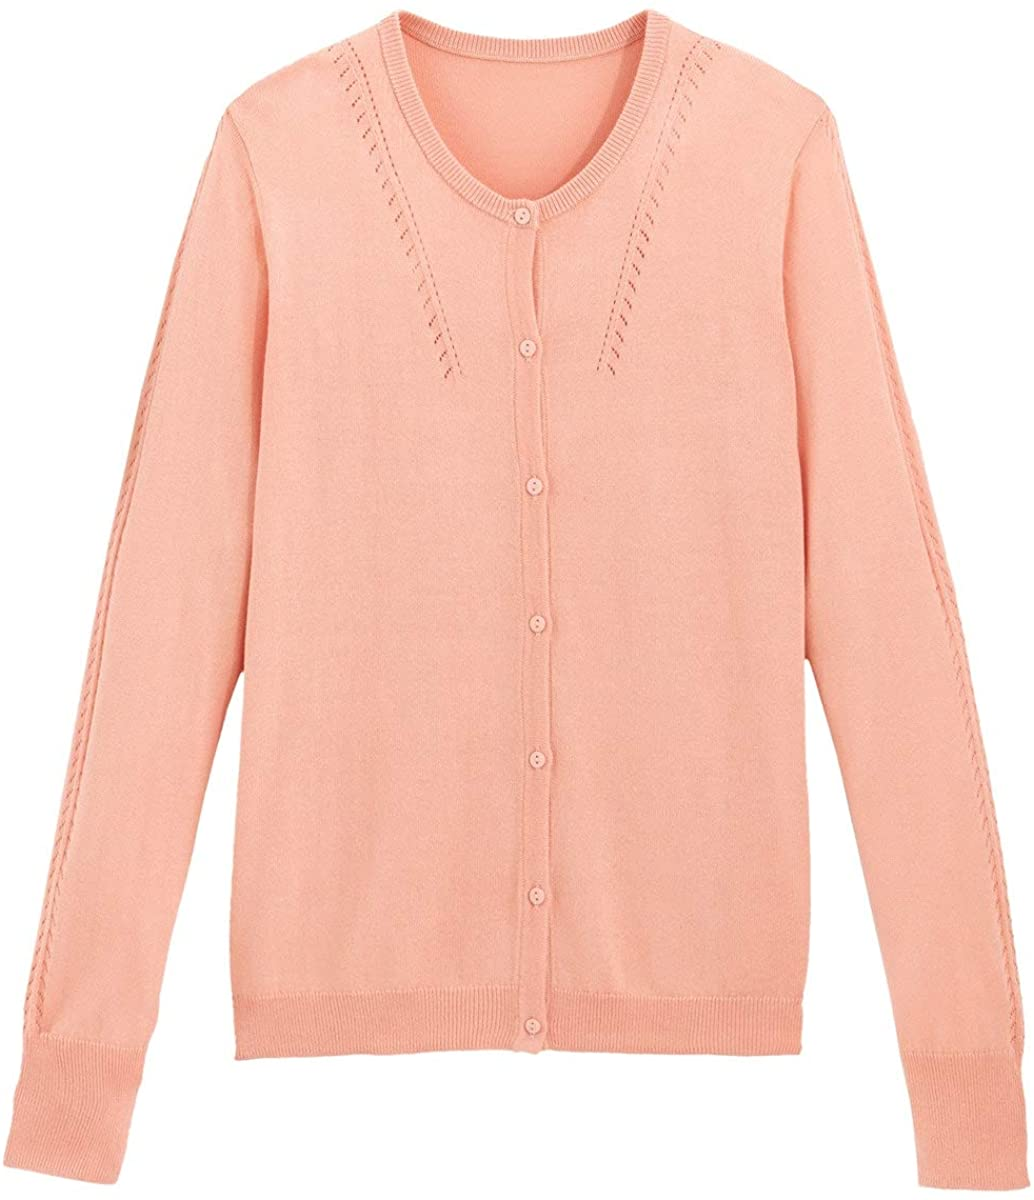 La Redoute Collection Womens Fine Knit Buttoned Cardigan with Crew Neck